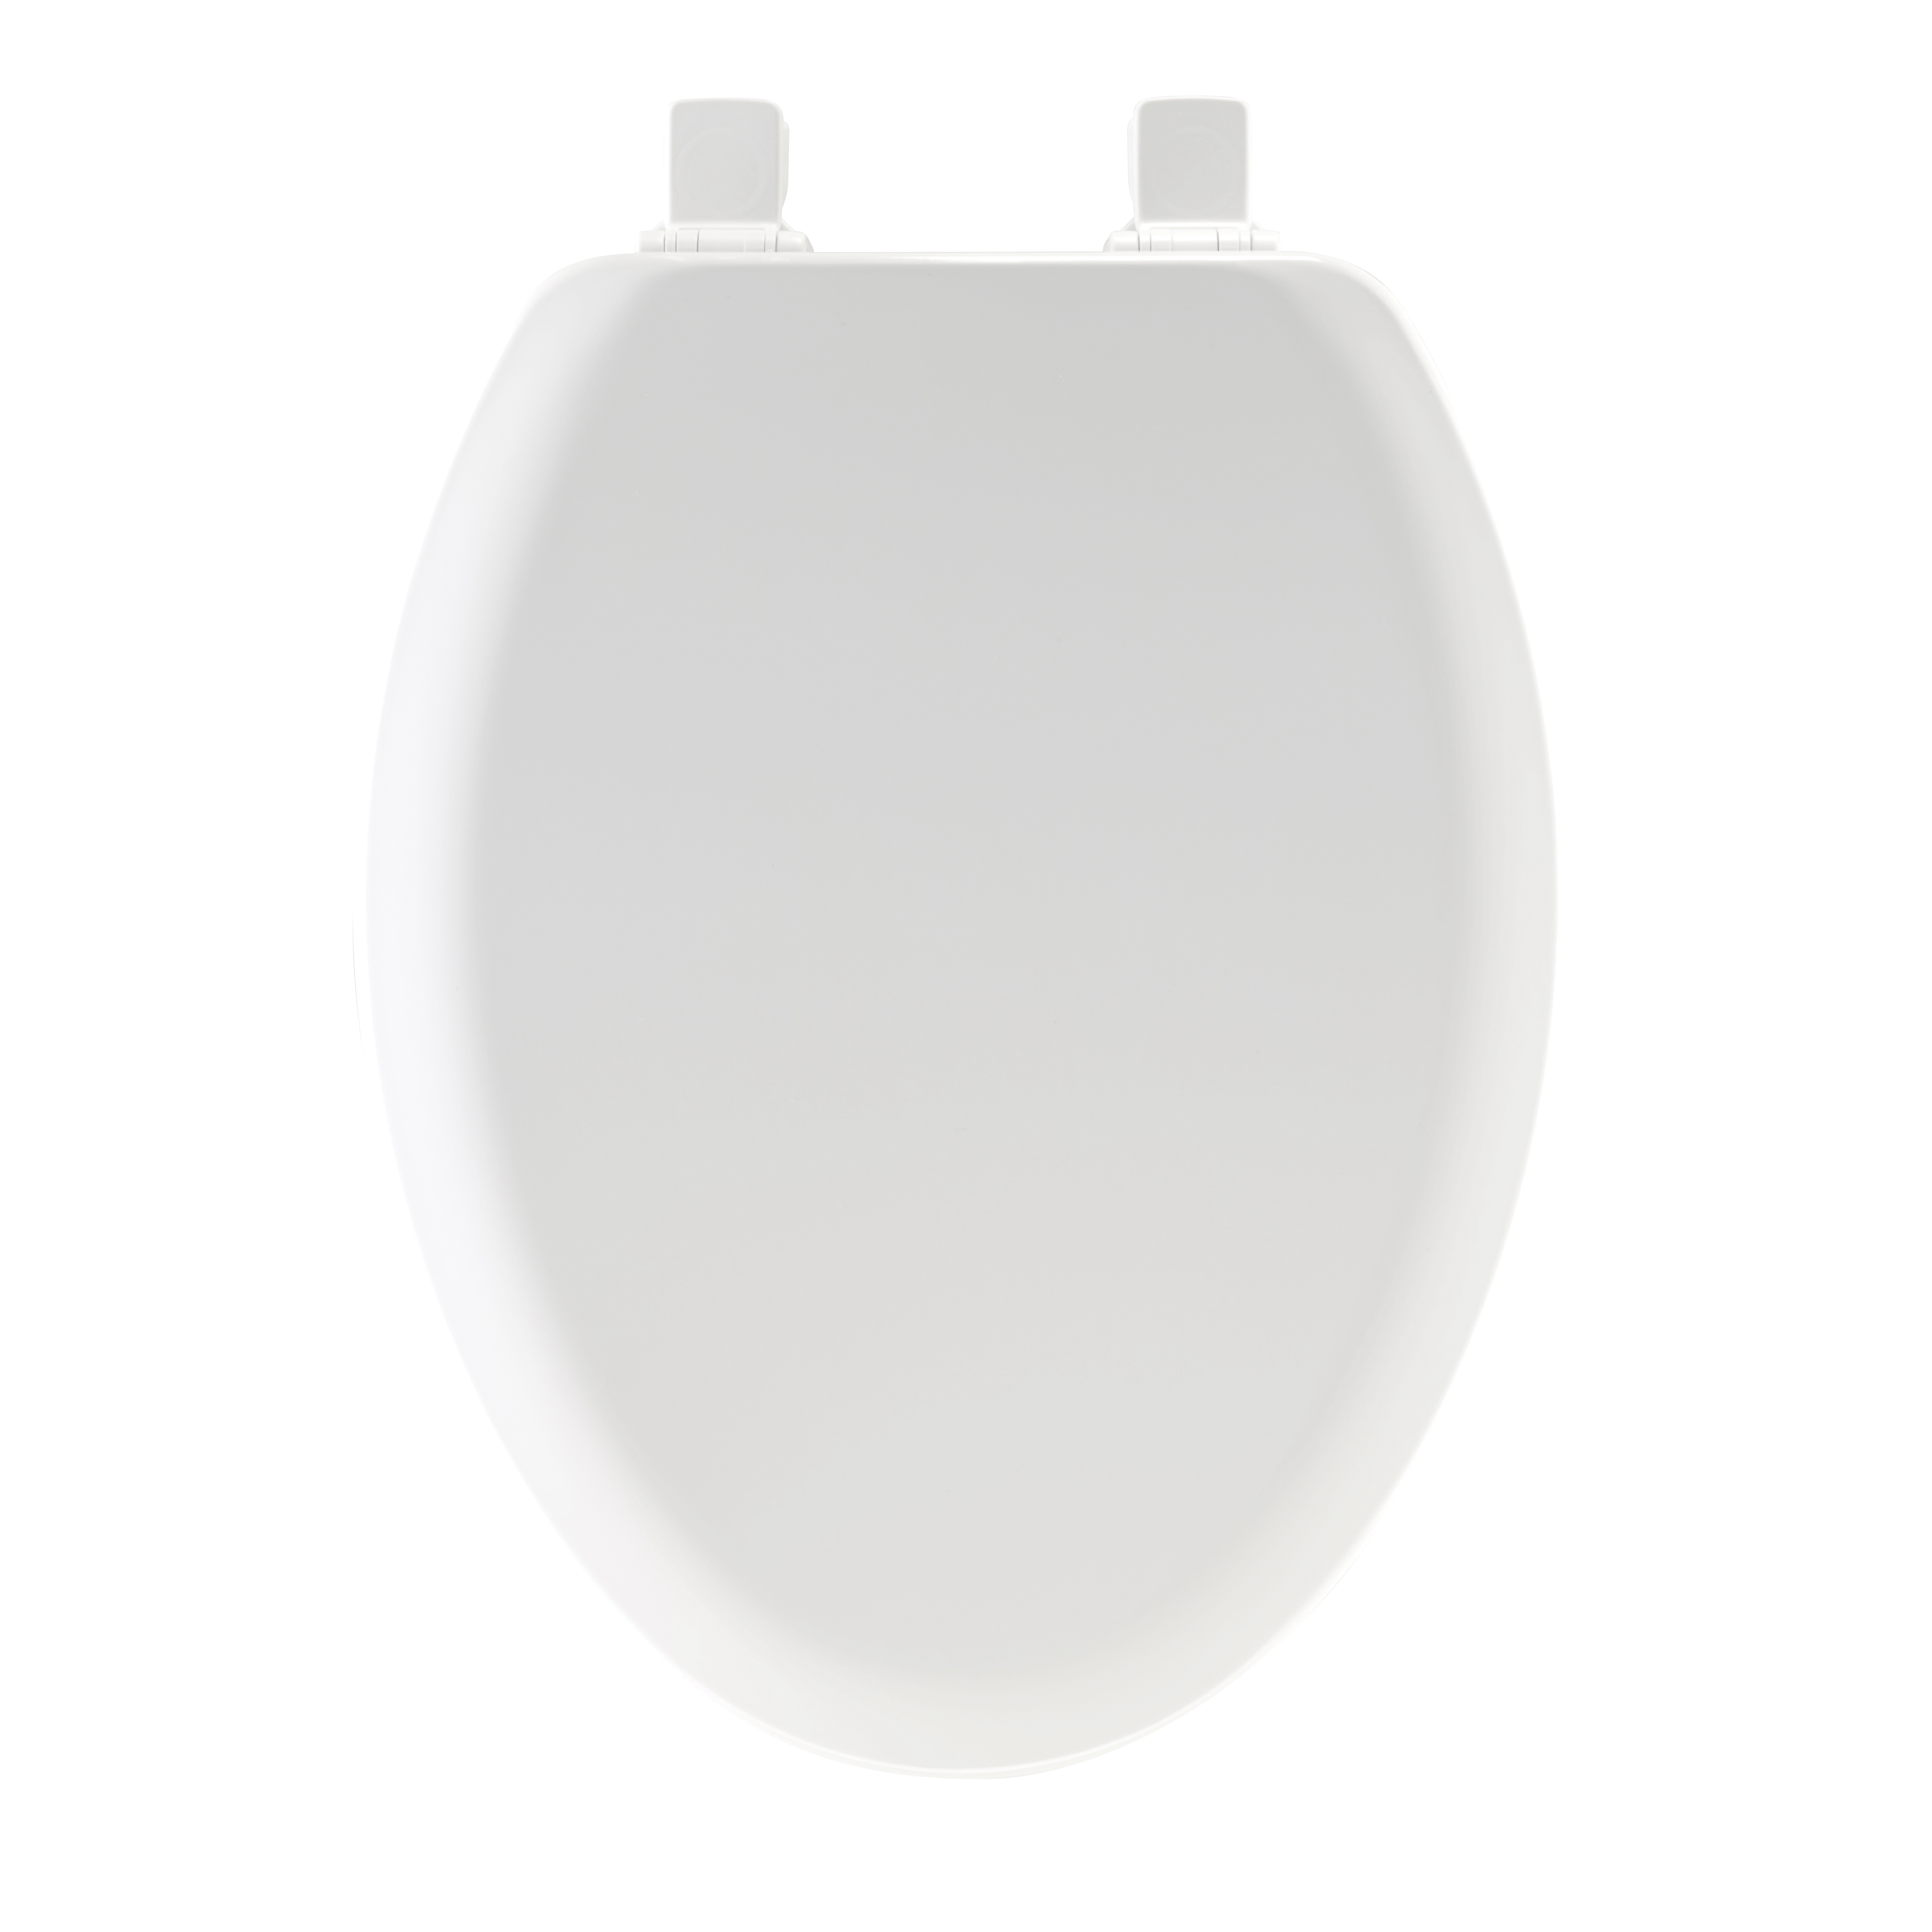 Picture of Mayfair 141EC-000 Toilet Seat, Elongated, Wood, White, Twist Hinge